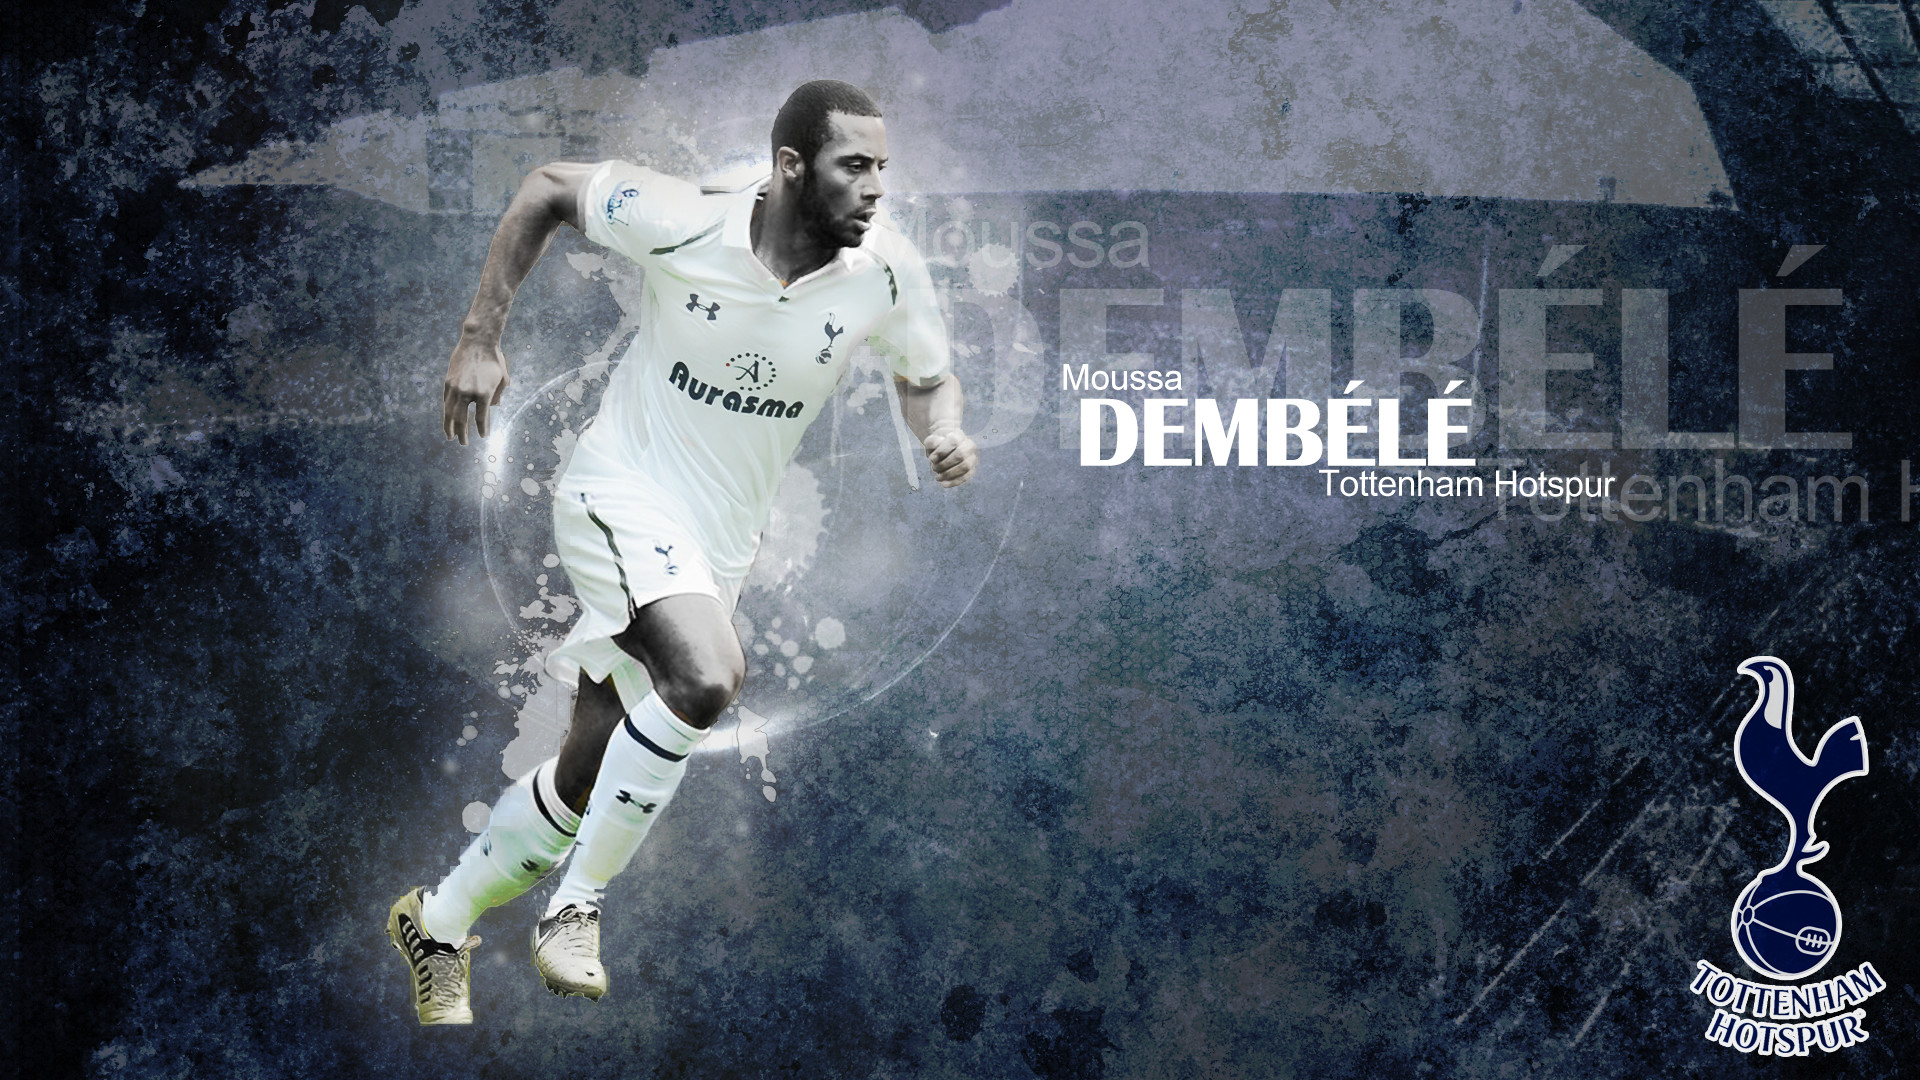 … Special Moussa Dembele 2016 Wallpapers, 5068434; HD …